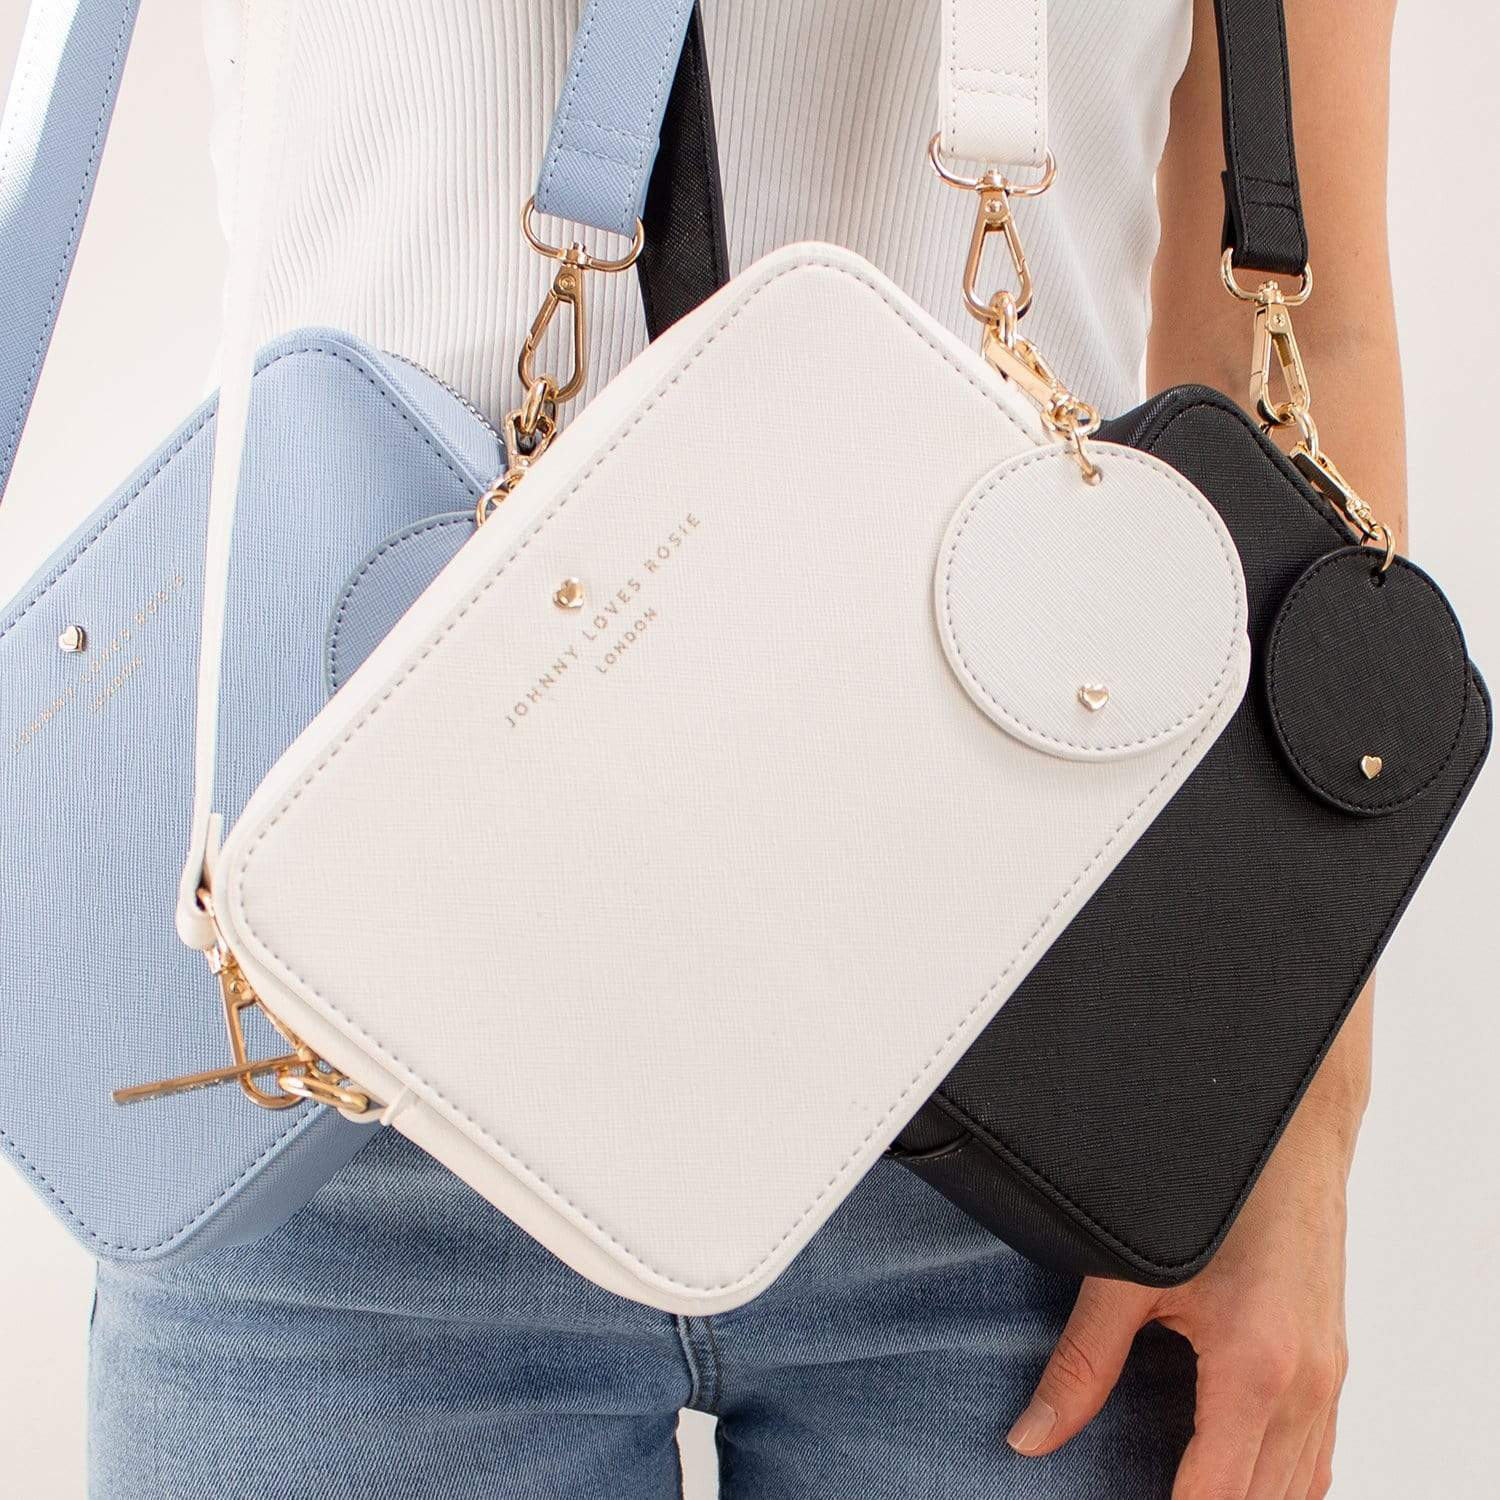 The Carrie cross body bag